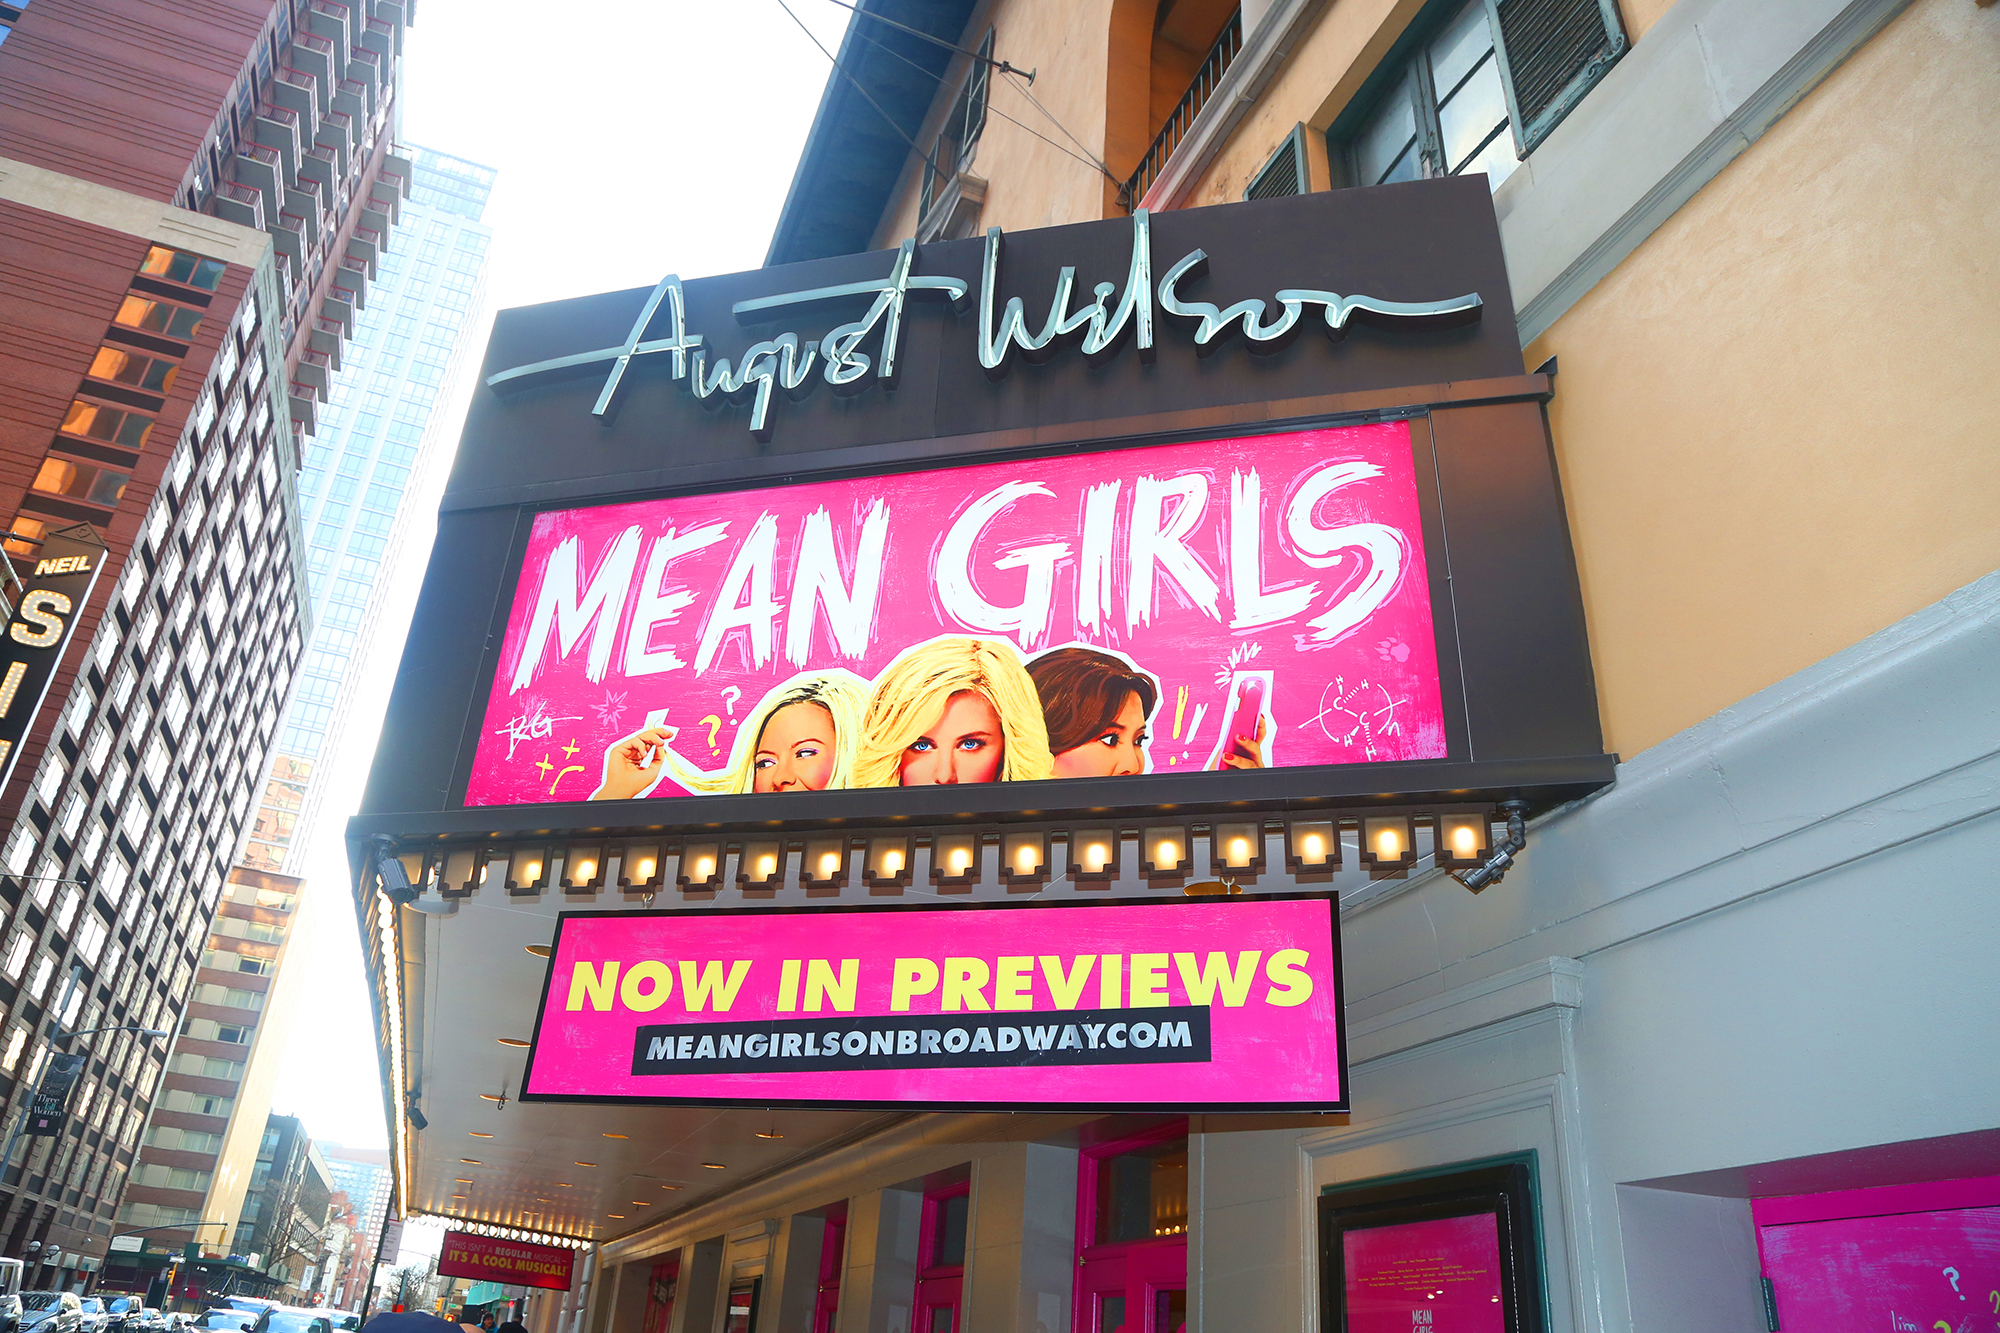 'Mean Girls' won't return to Broadway post-COVID shutdown